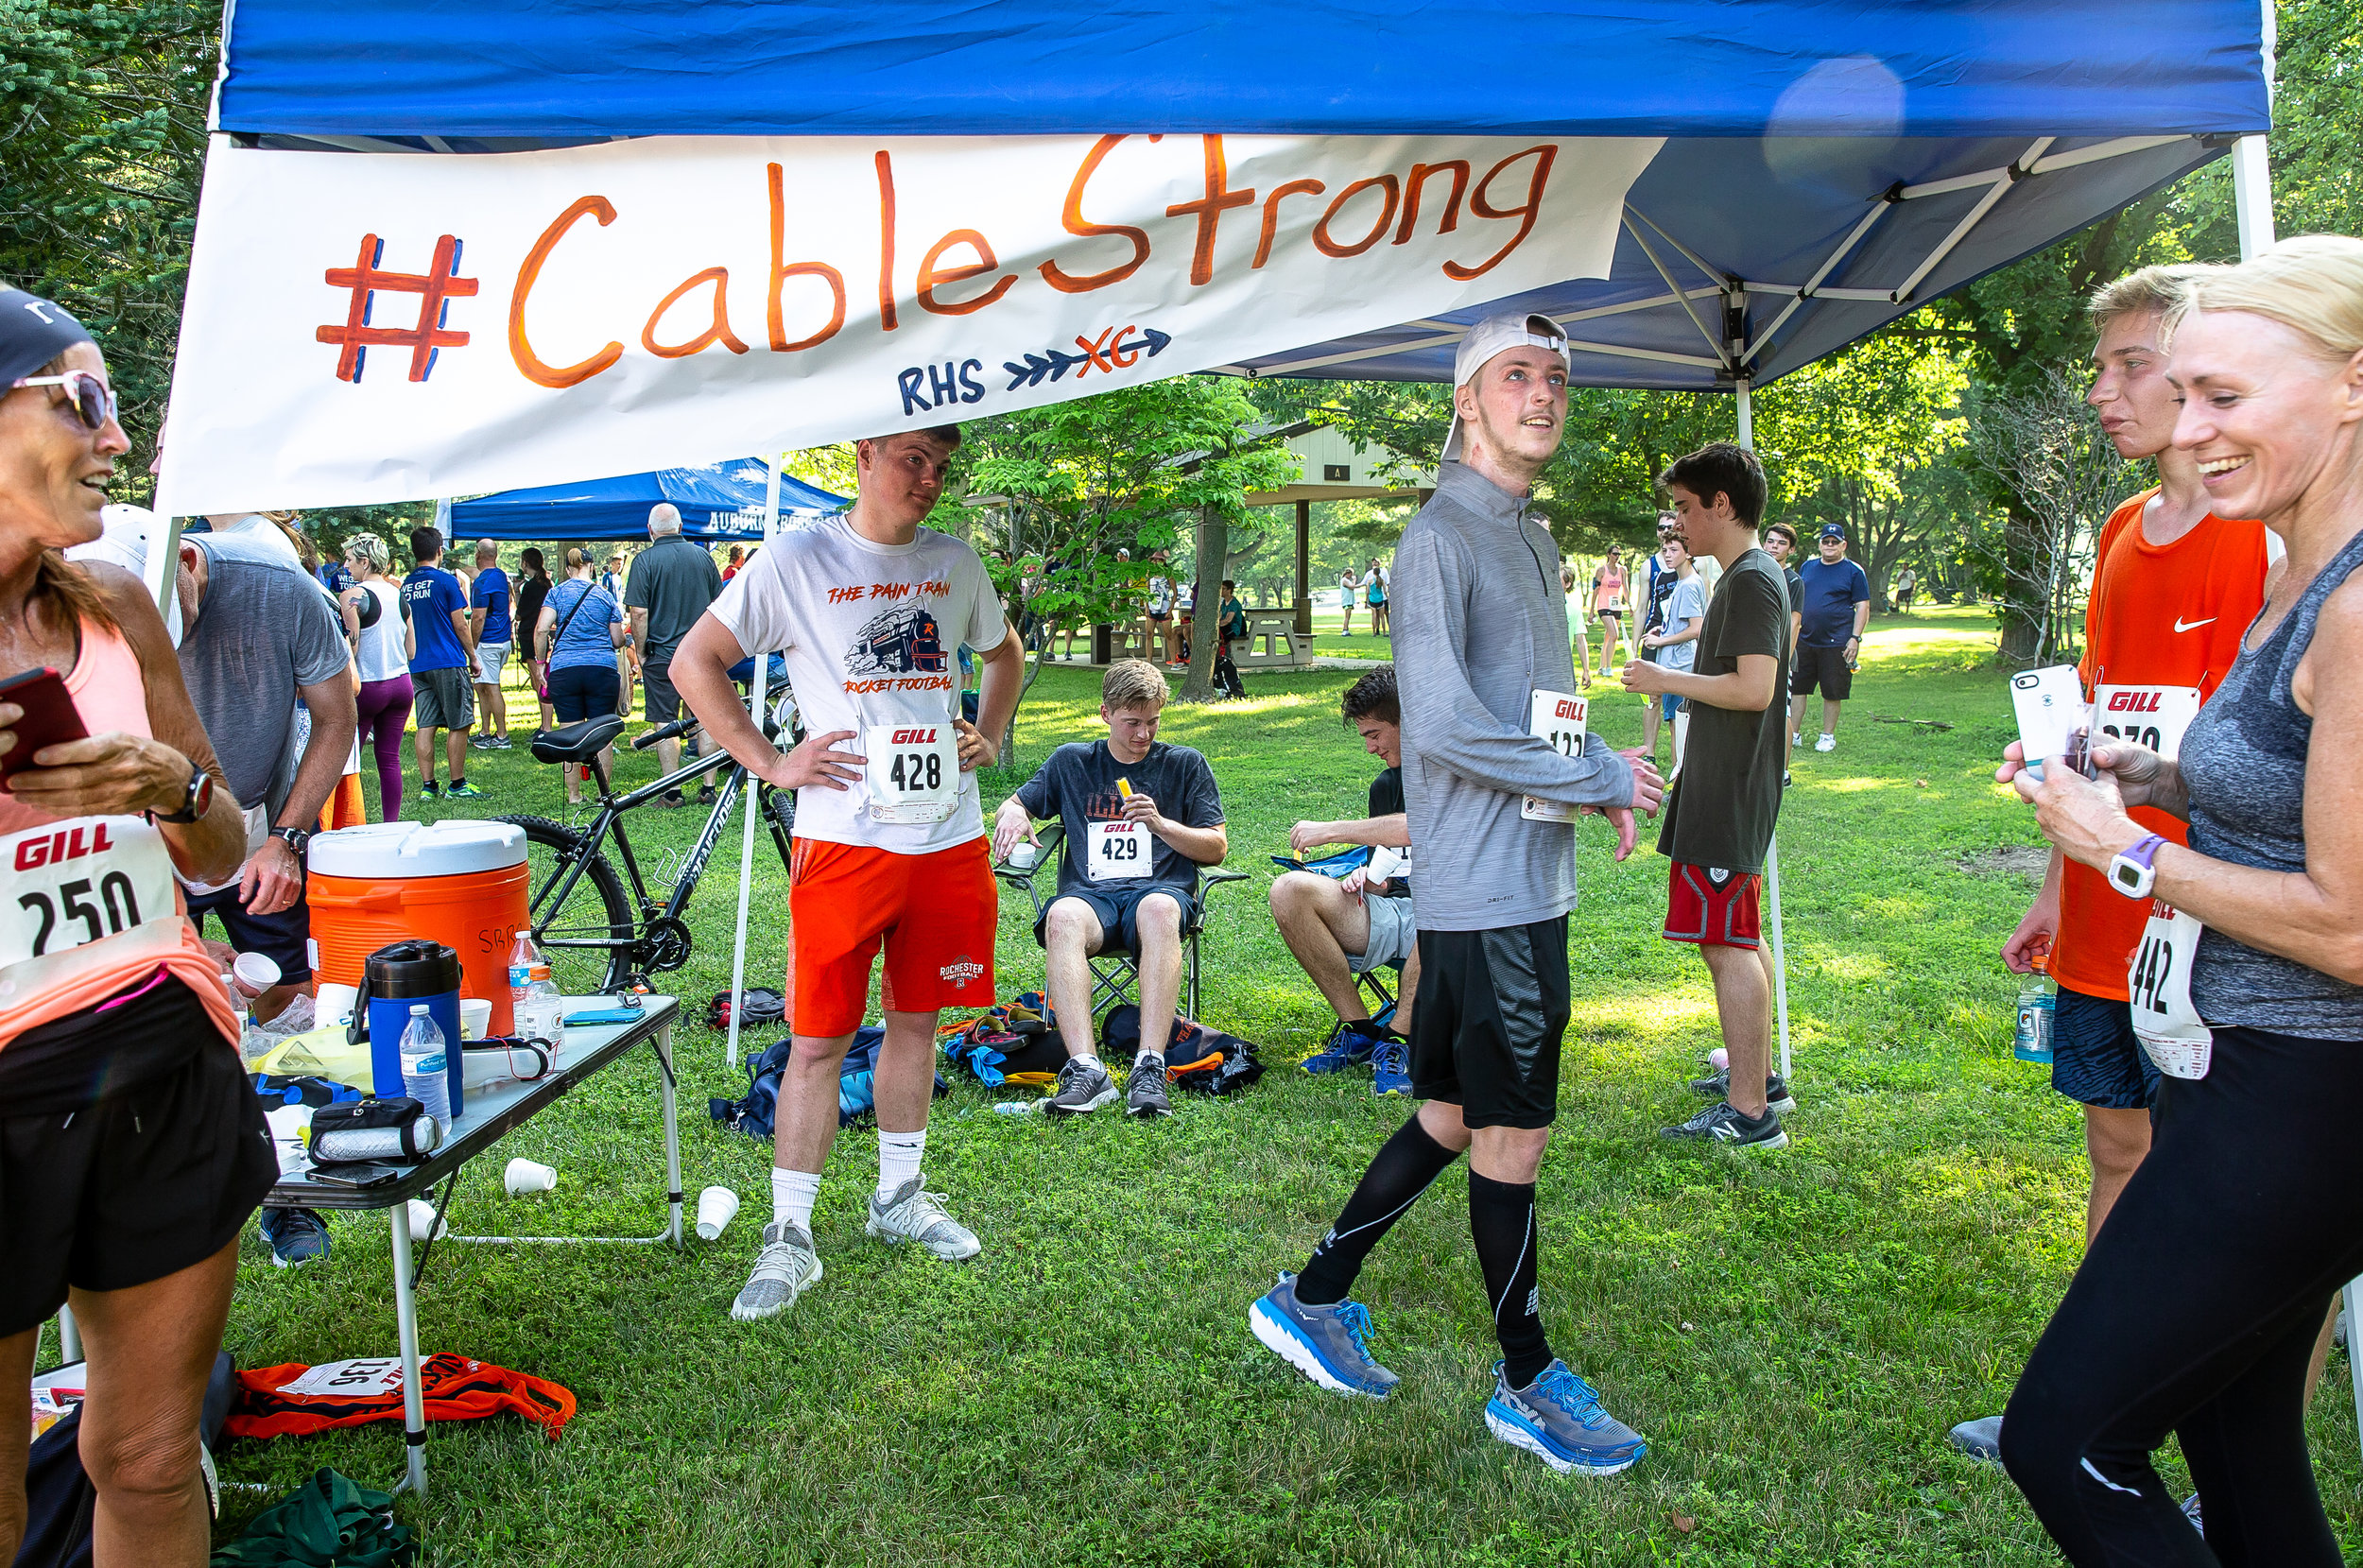 "Rochester graduate Josh Cable, center, walks under the banner of #CableStrong after completing his first race back during the Bob Goldman Memorial Scholastic Challenge 5K at the Center Park, Saturday, June 16, 2018, in Springfield, Ill. Cable suffered major injuries in a house fire on May 1 that he spent 24 days in the hospital recovering from. ""It definitely feels good to be back, it's what I love doing,"" said Cable. ""It's awesome that people are paying attention to my story and my process. It definitely motivates me to do better and be better and hopefully I'm doling the same to them."" [Justin L. Fowler/The State Journal-Register]"